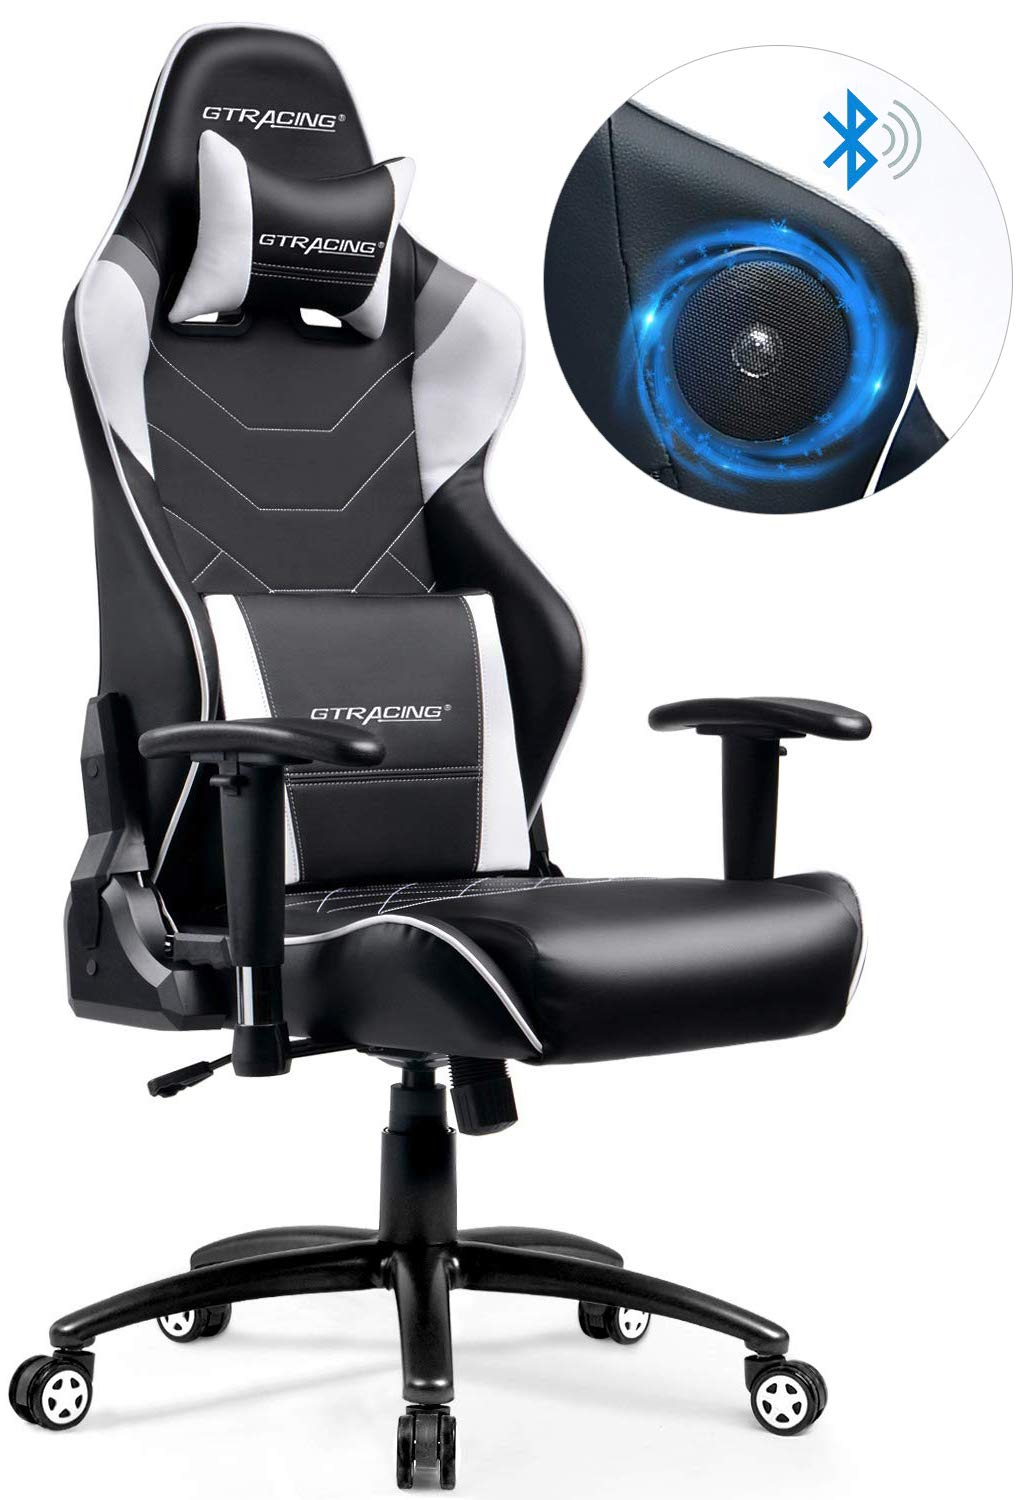 GTRACING Music Gaming Chair  sc 1 st  Game Gavel & Best Gaming Chair with Speakers: No More Wires! - Game Gavel